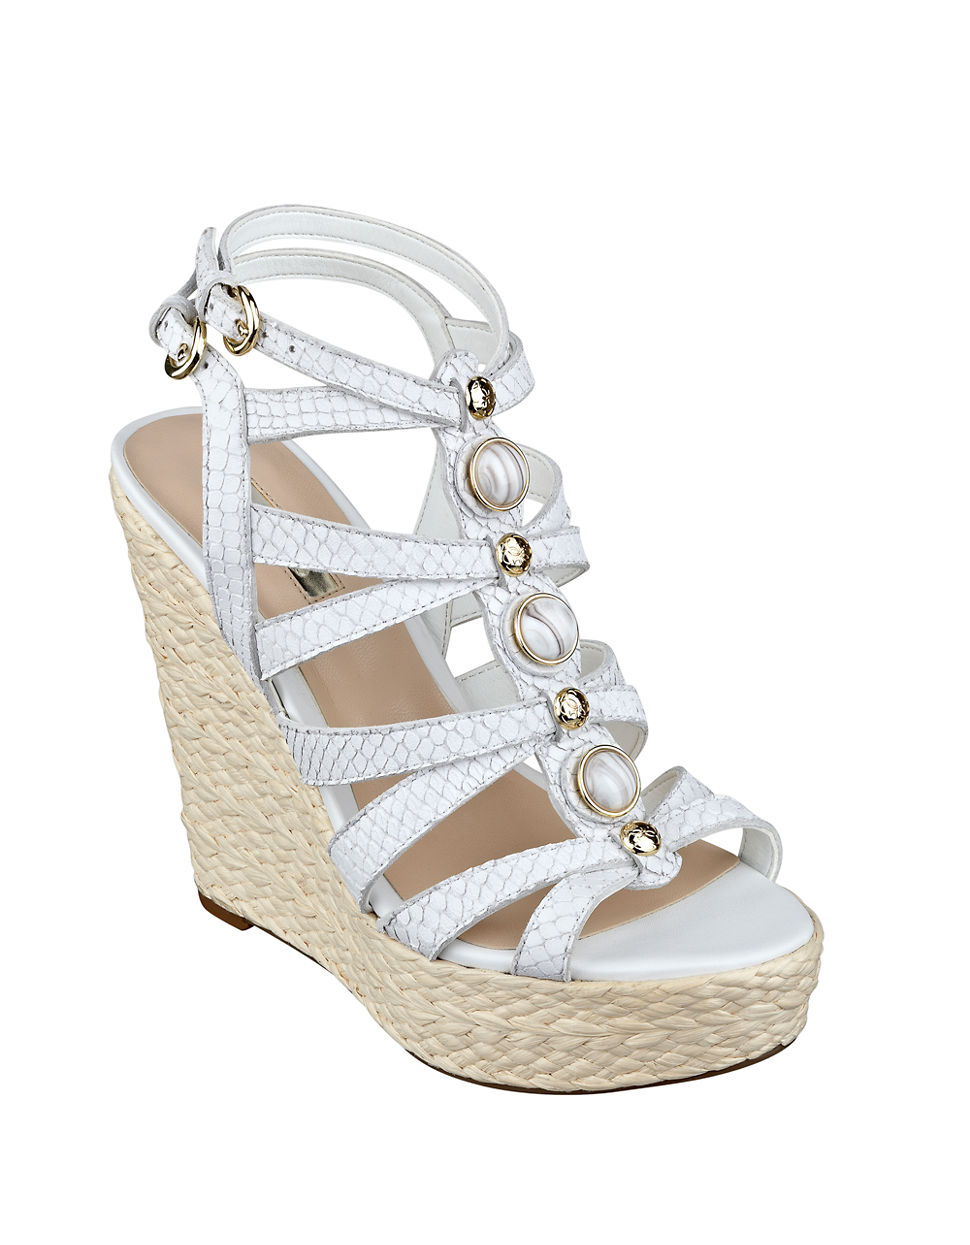 9566fab863 Guess Onixx Leather Wedge Sandals in White - Lyst